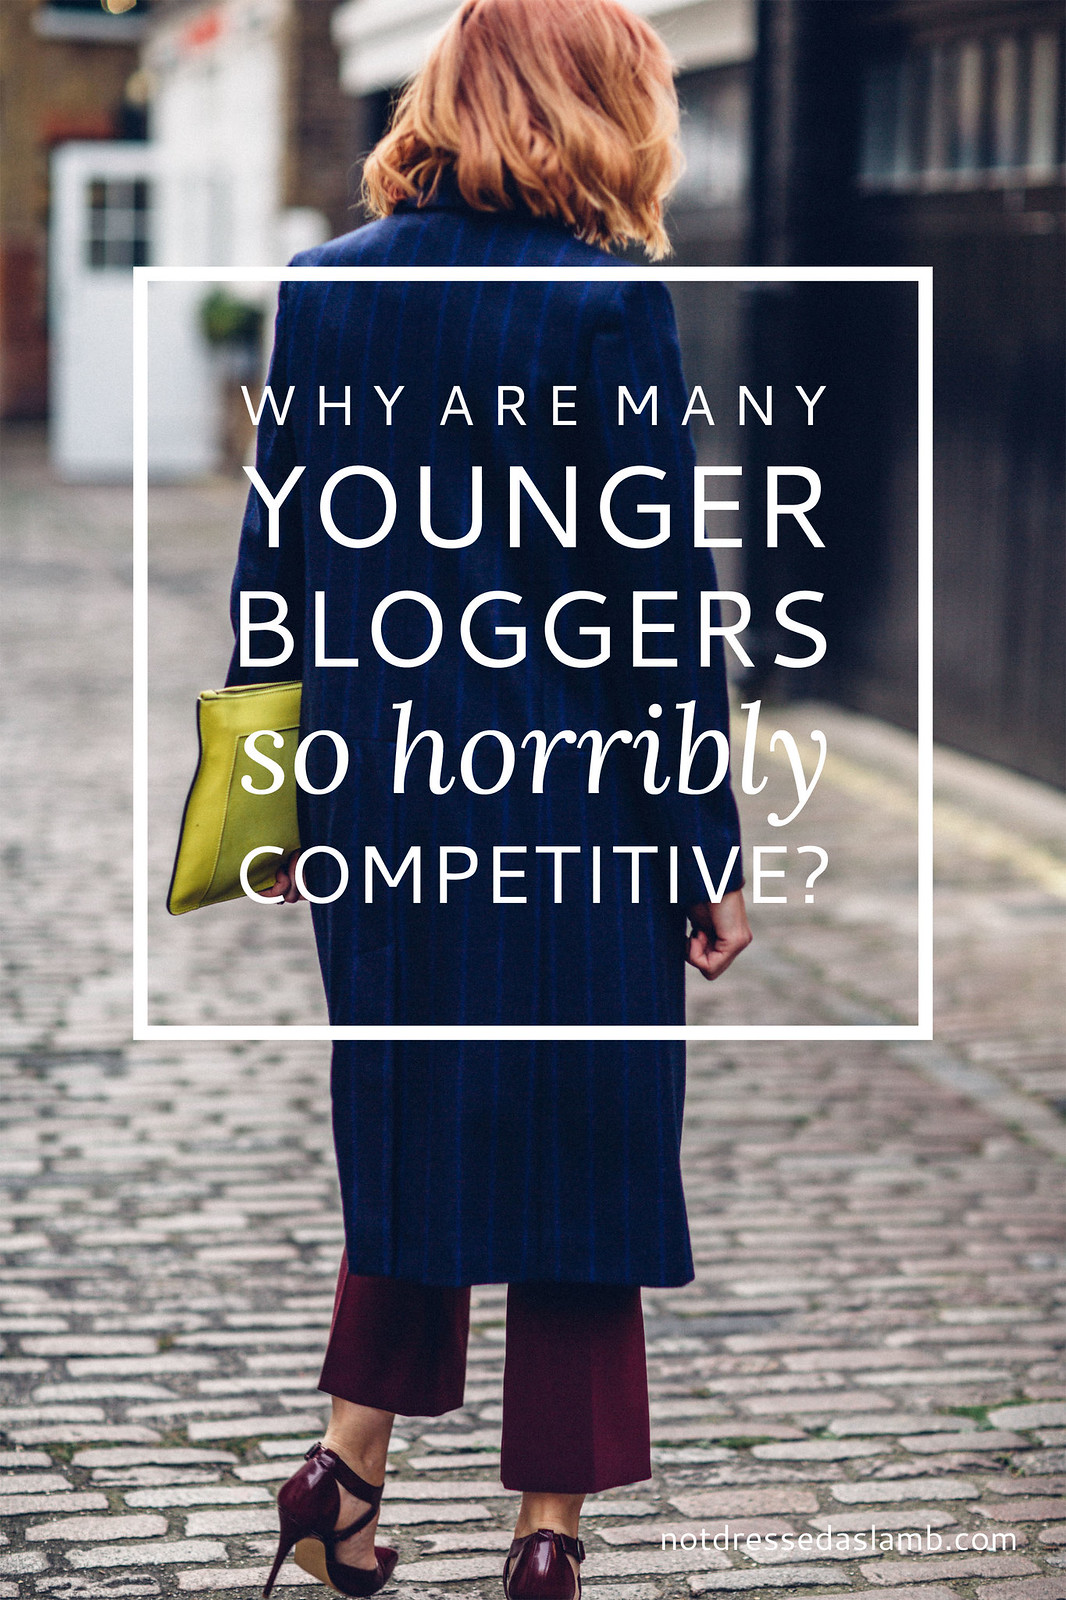 Why Are Many Younger Bloggers So Horribly Competitive? | Not Dressed As Lamb